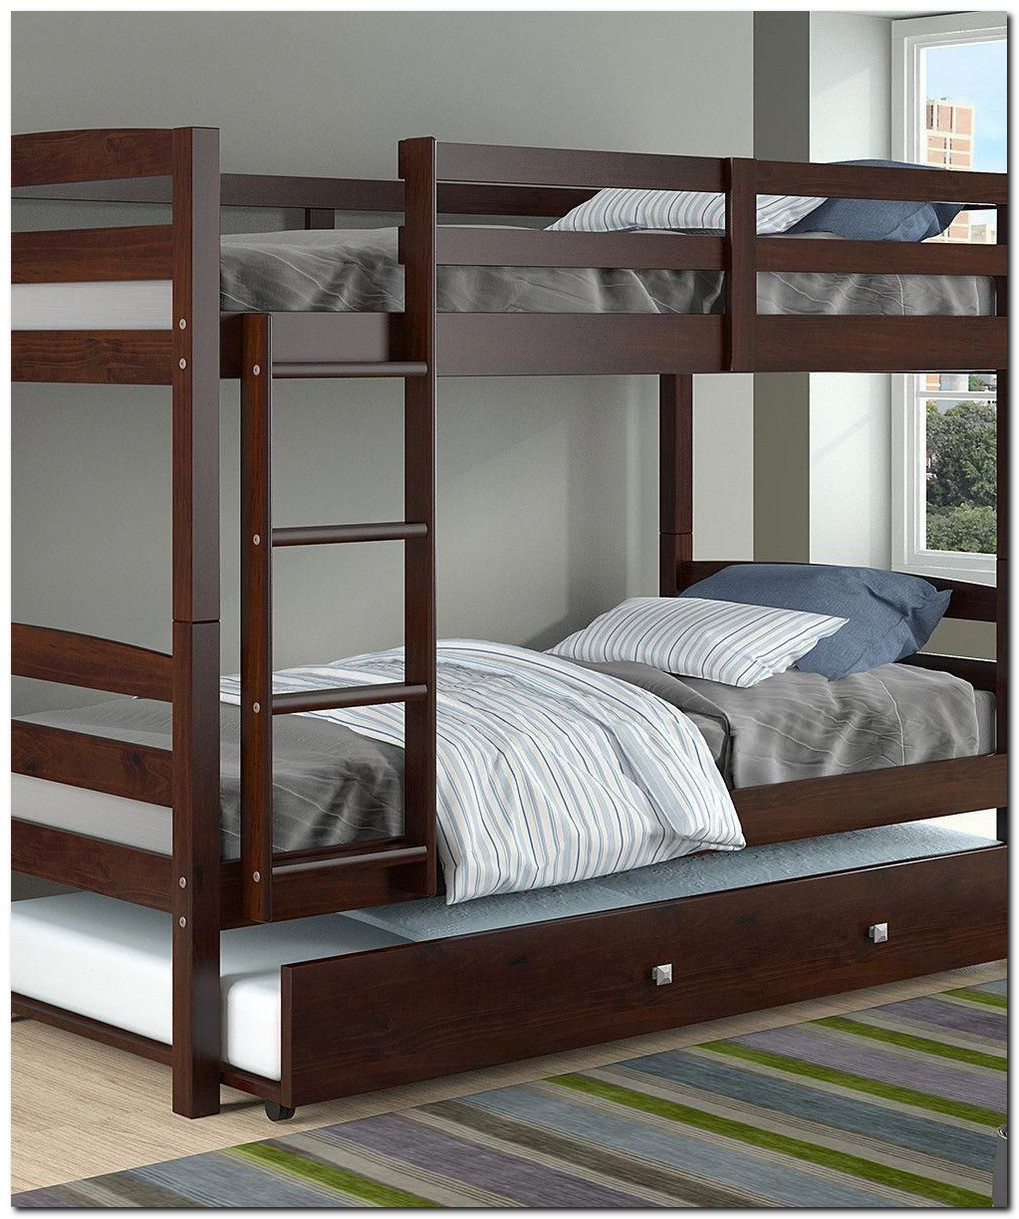 Beds for children choosing bunk beds for kids 12